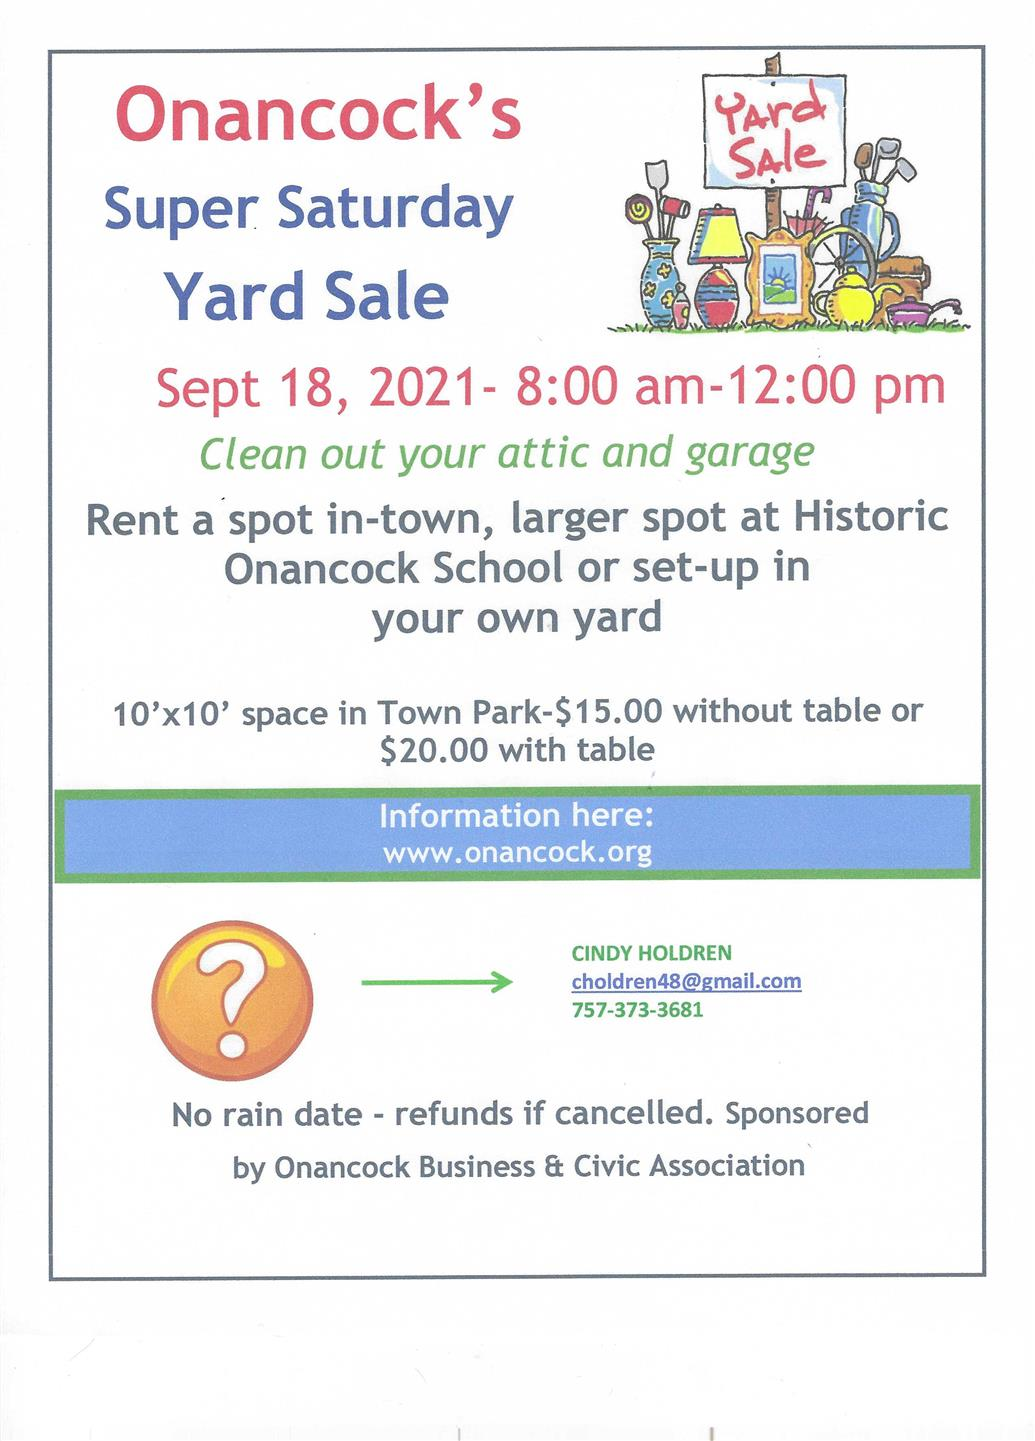 Be sure to reserve your space at the Onancock Town Park or Historic Onancock School.